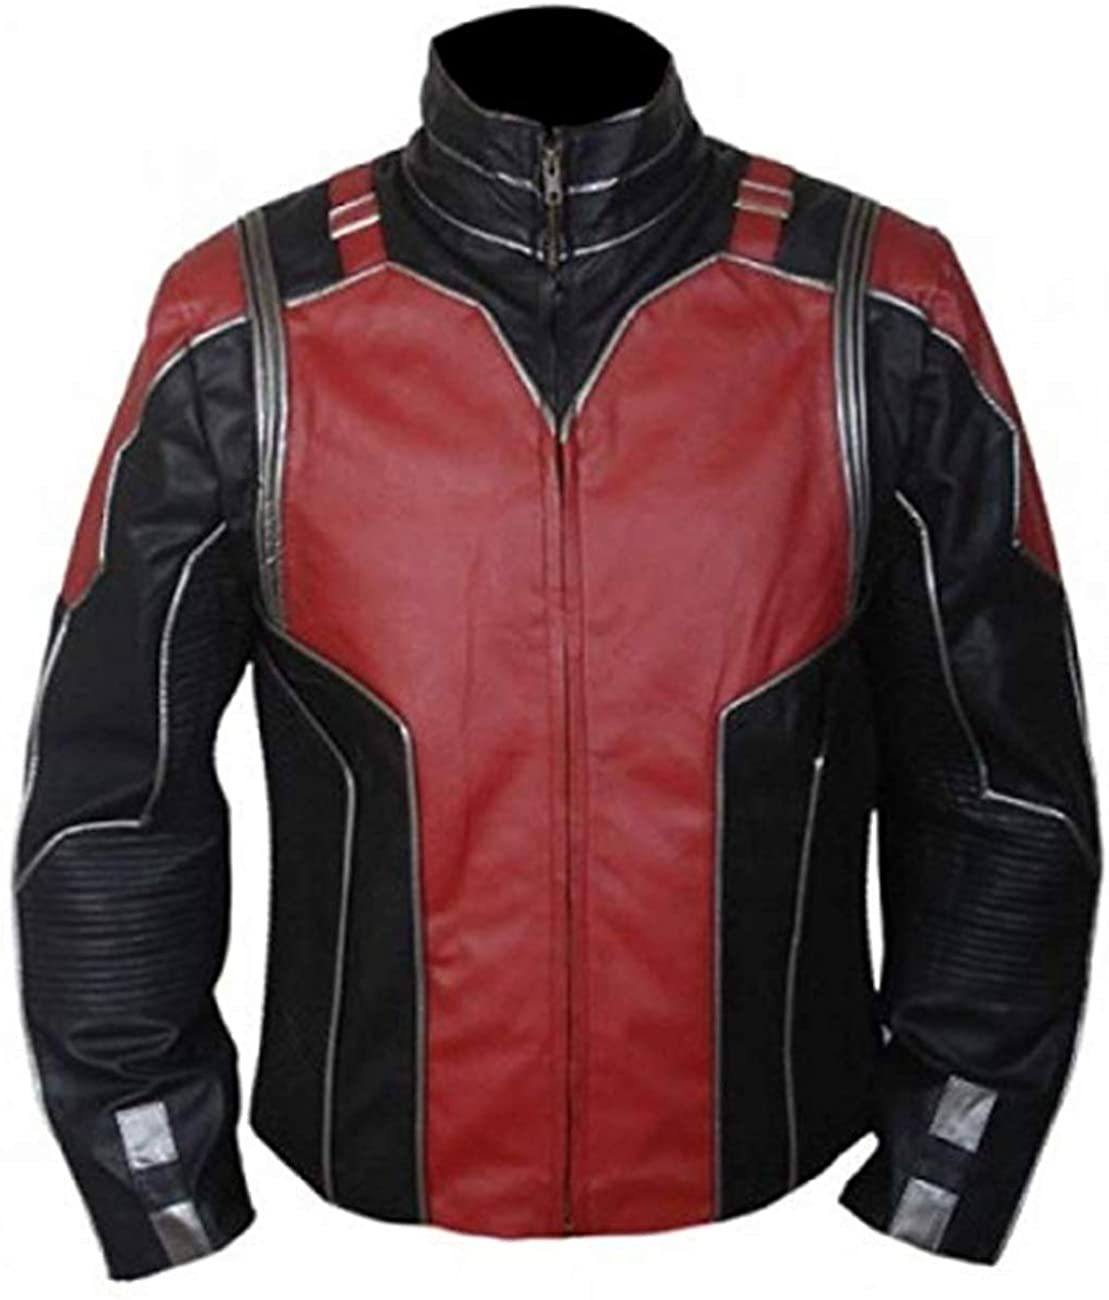 Ant Red & Black Superhero Movie Synthetic Leather Jacket Men's